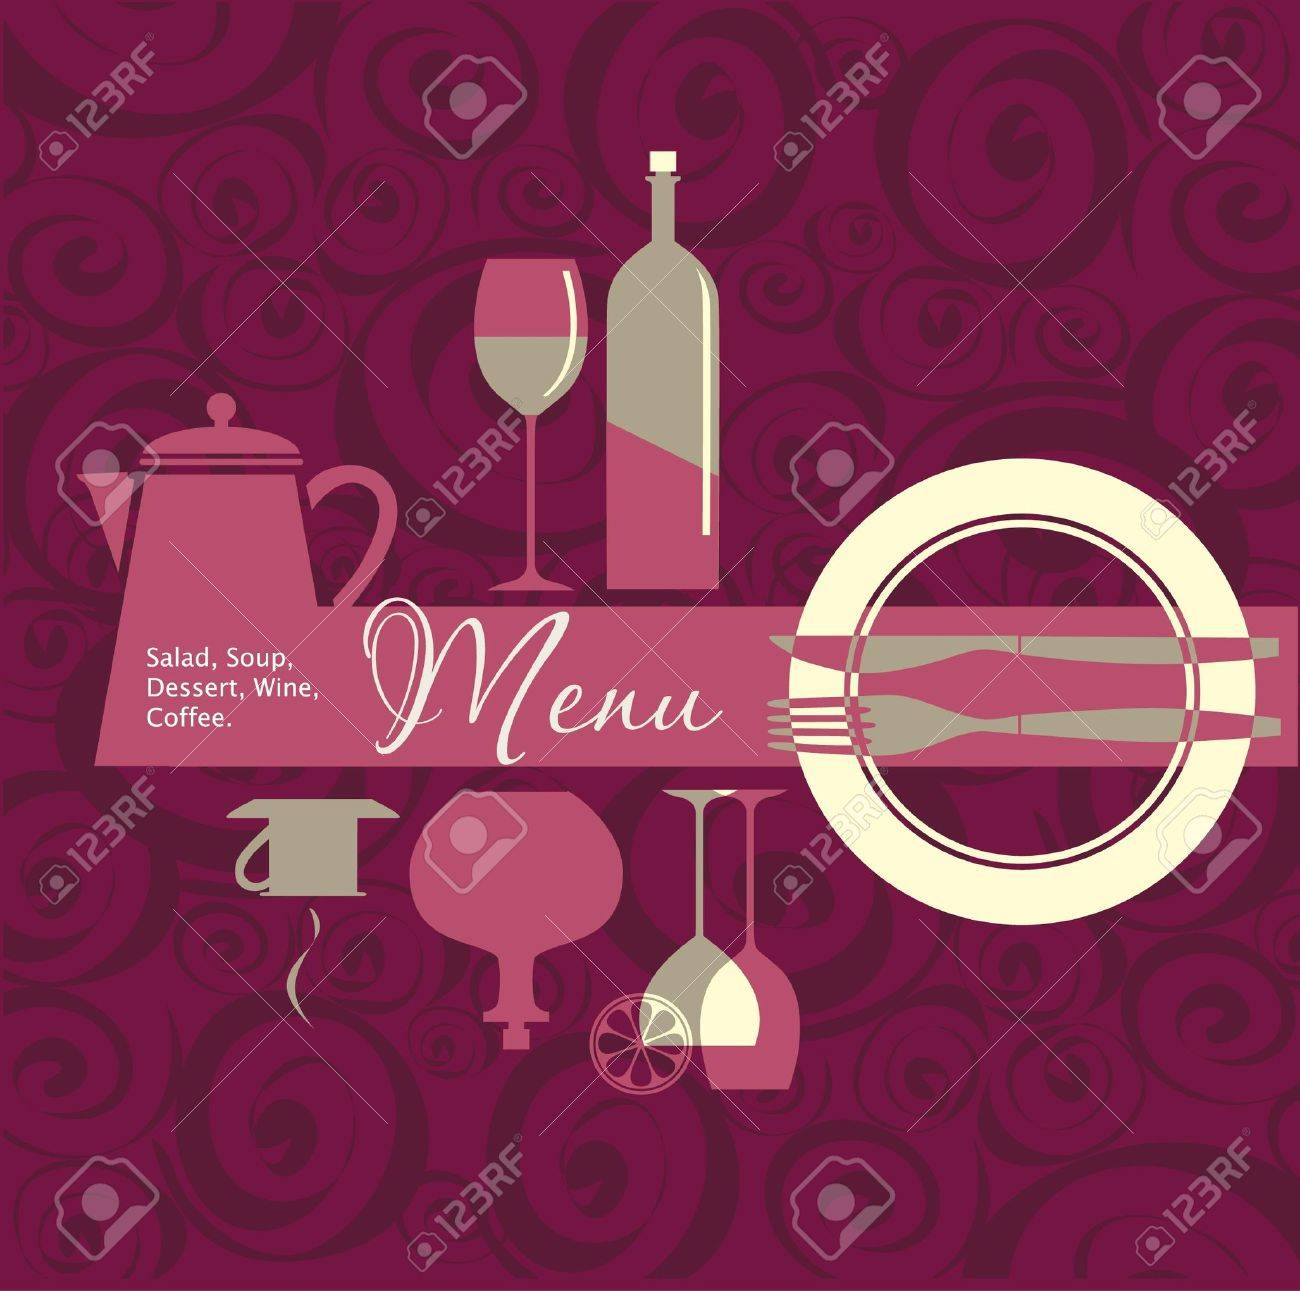 menu for restaurant, cafe, bar, coffeehouse royalty free cliparts